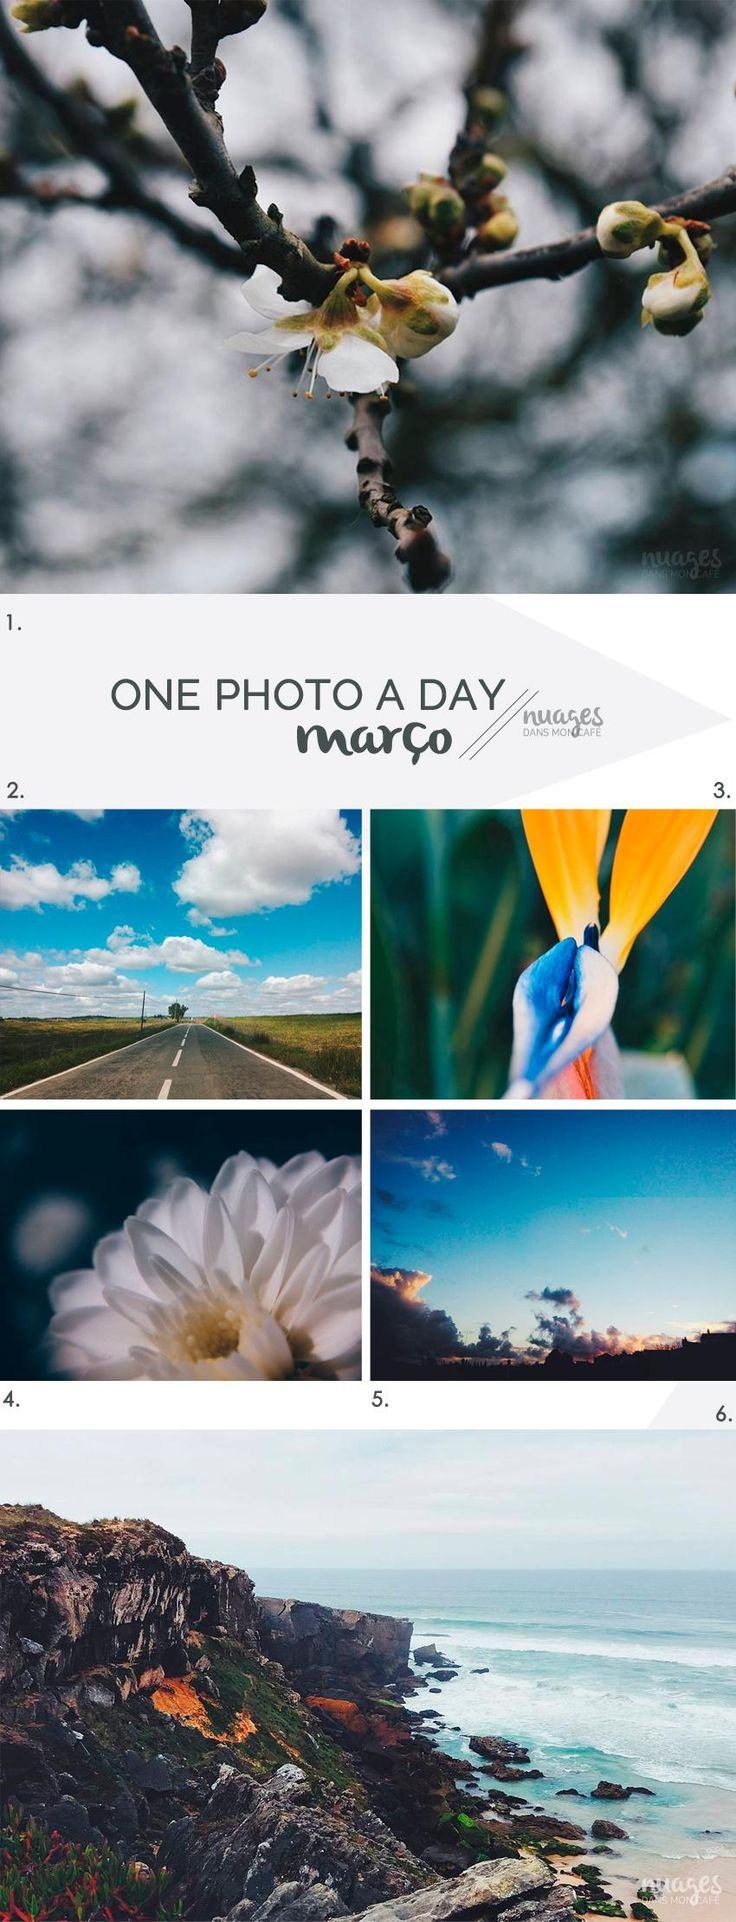 One photo a day